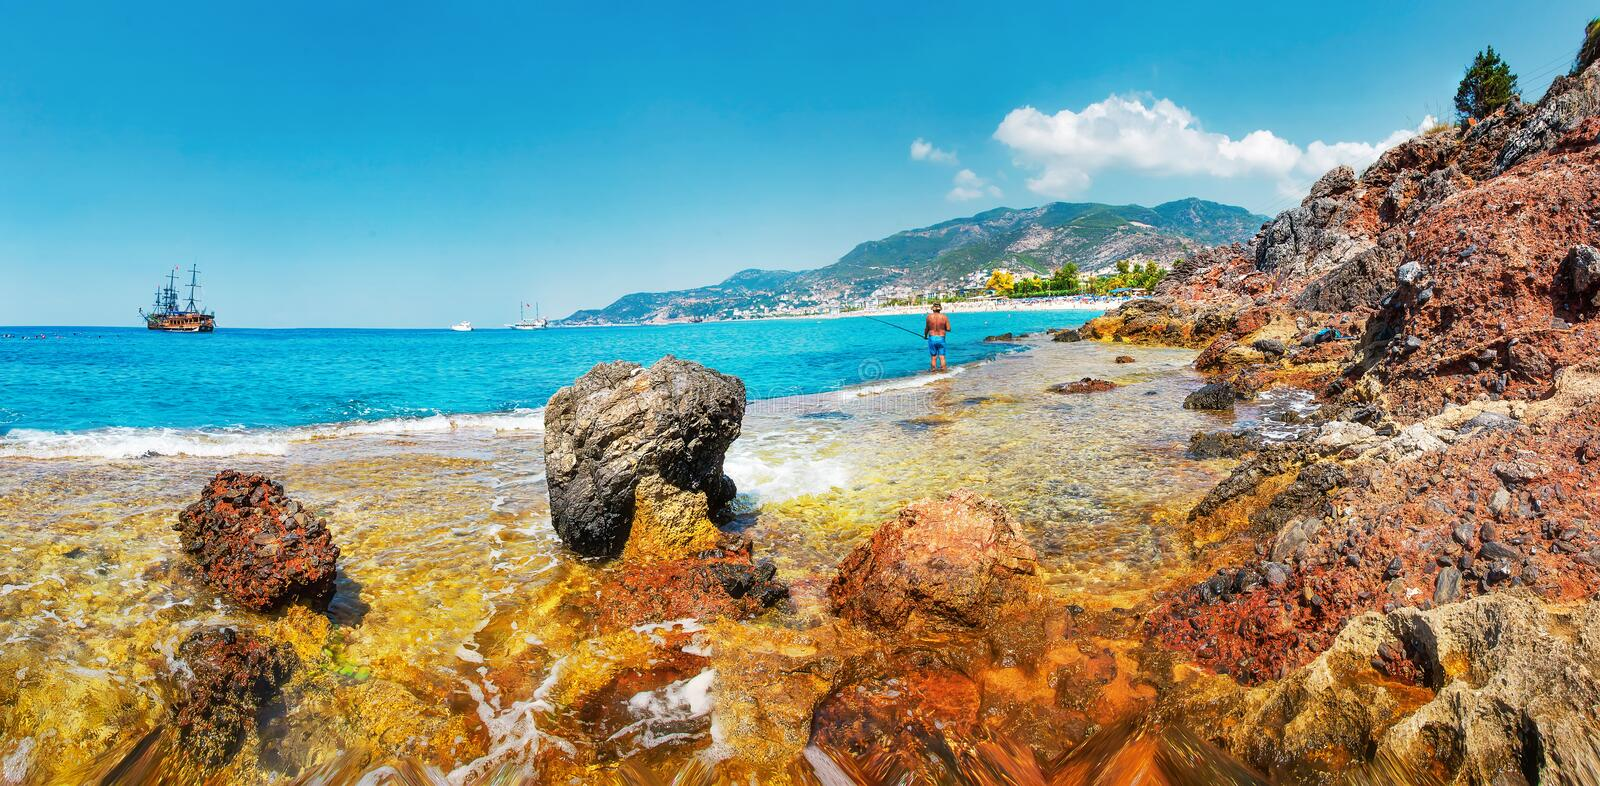 Landscape of tropical rocky beach on sunny summer day. The fisherman catches fish in the warm sea waters from the shore stock image